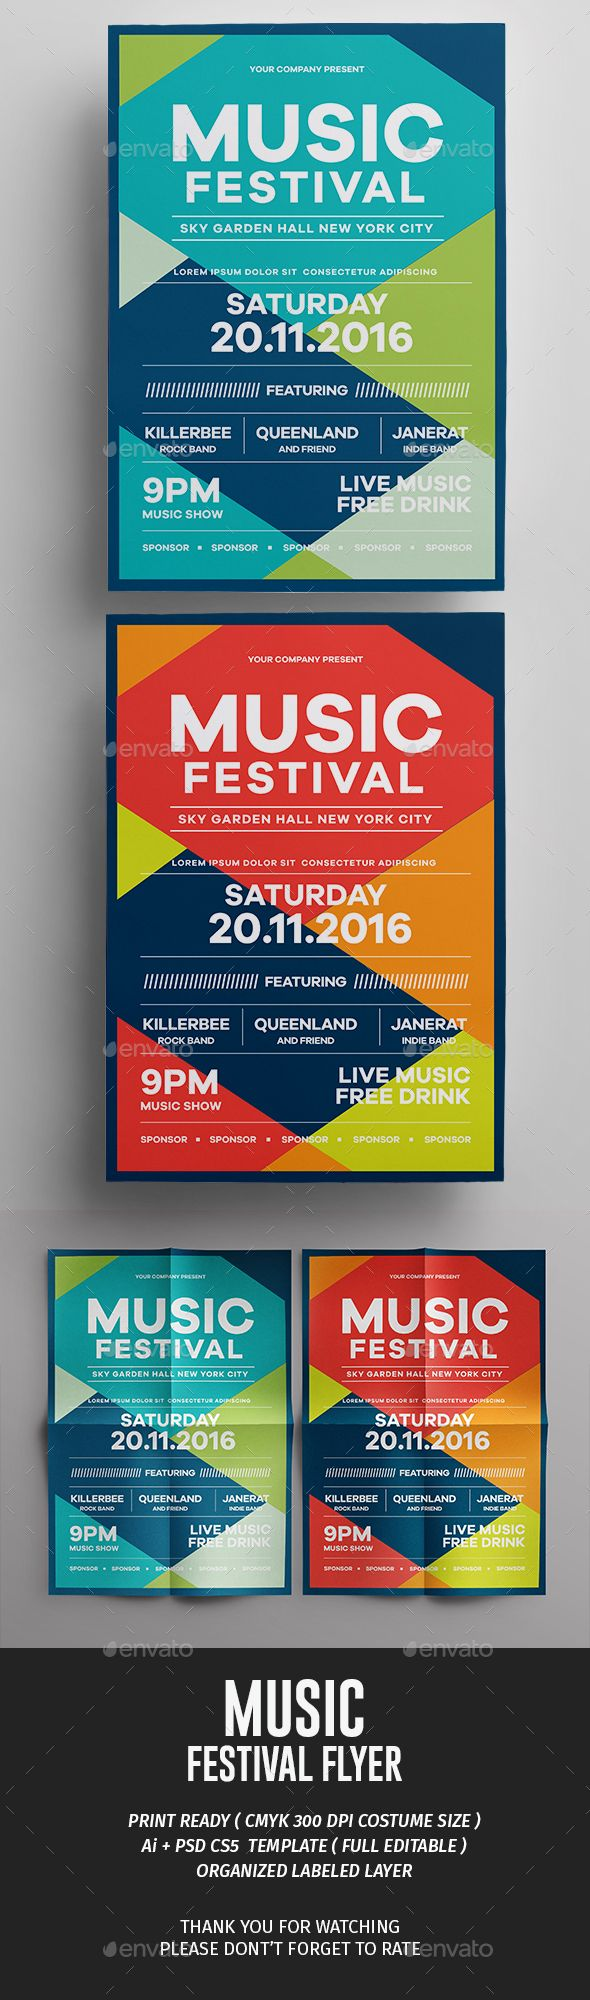 Music Fest Flyer - Print Templates